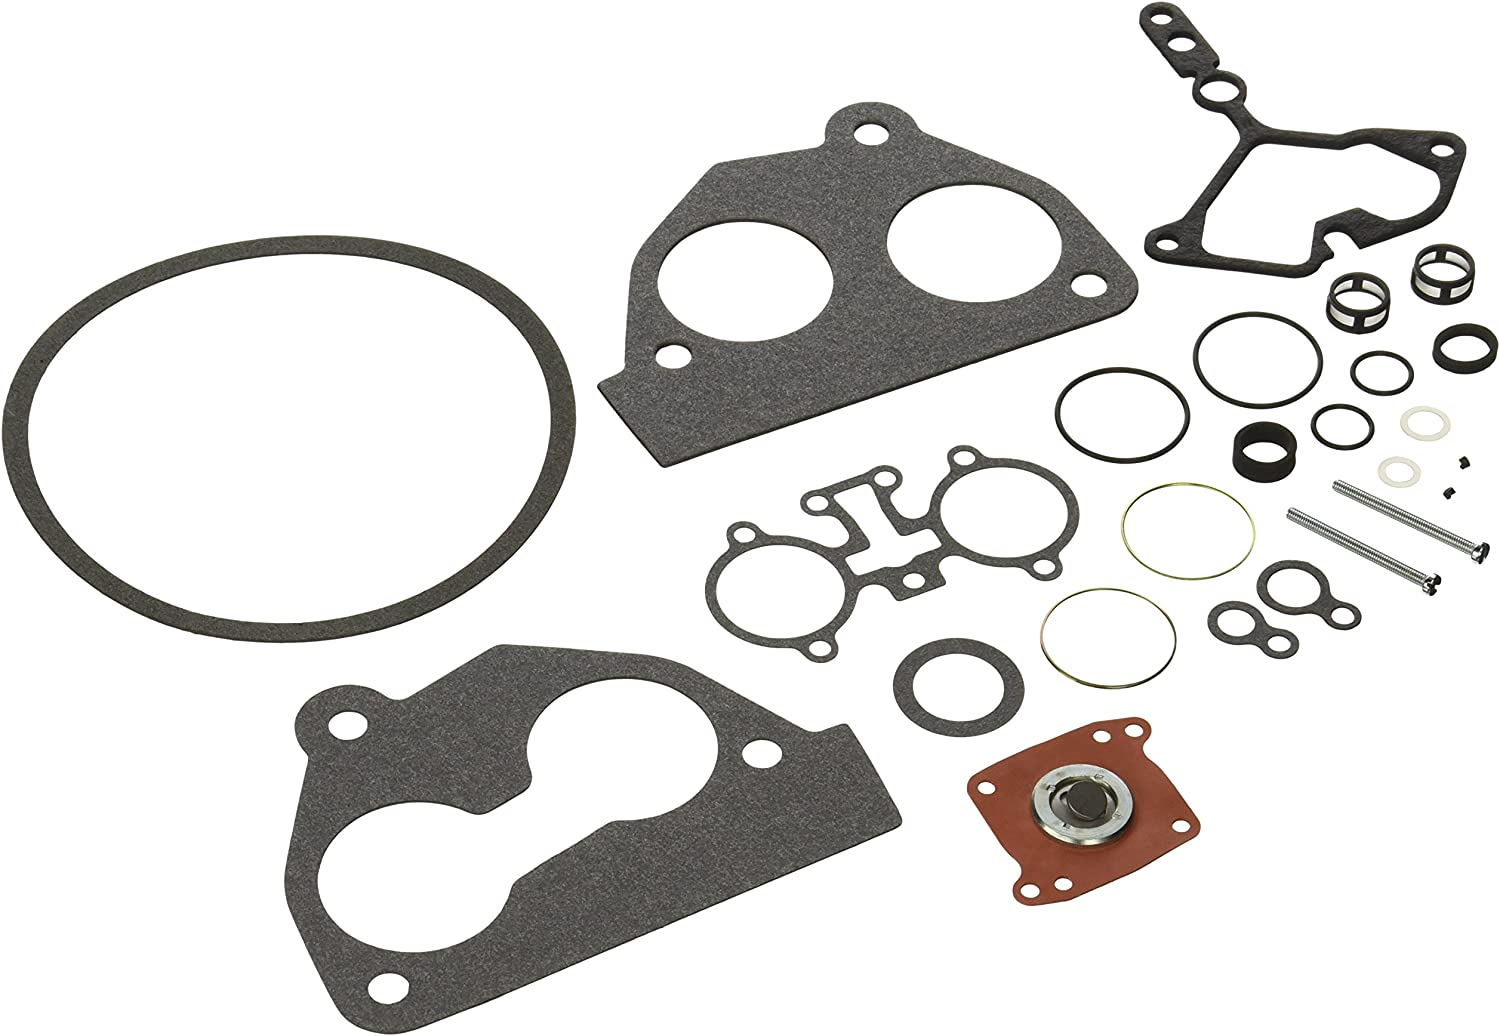 Standard Motor Products 1704 TBI Kit